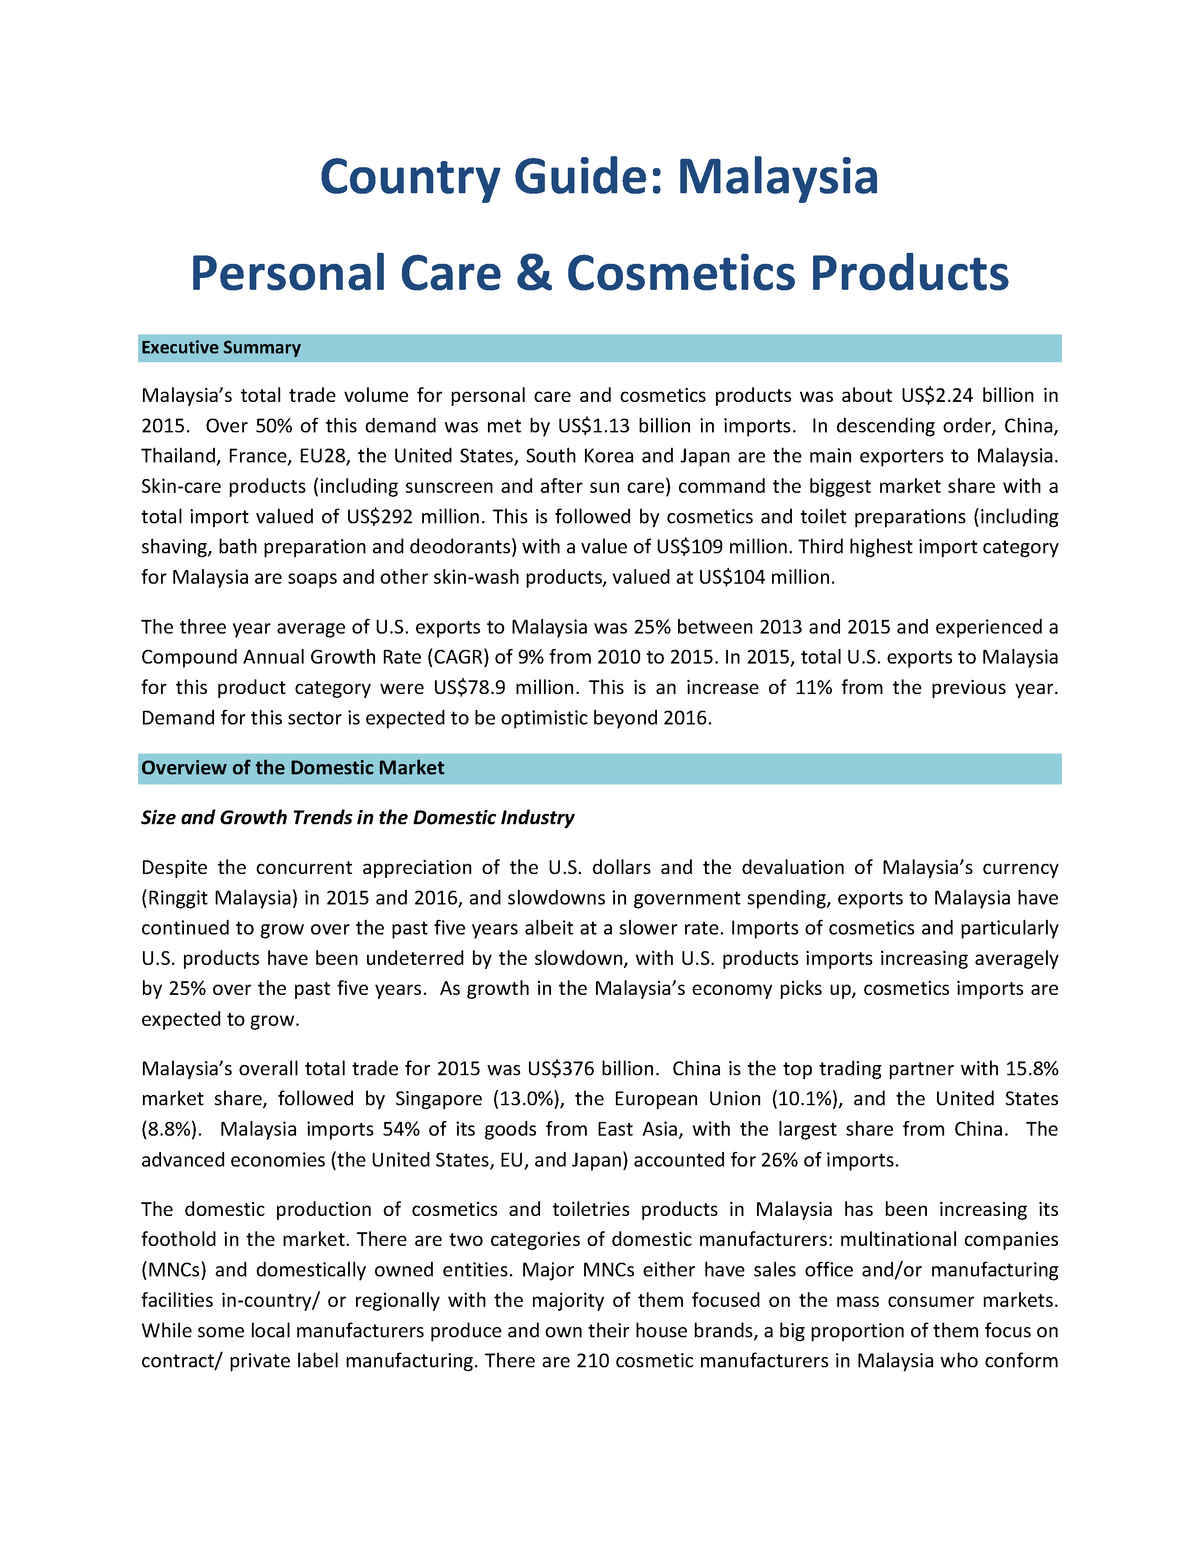 Malaysia Personal Care and Cosmetics Country Guide Final